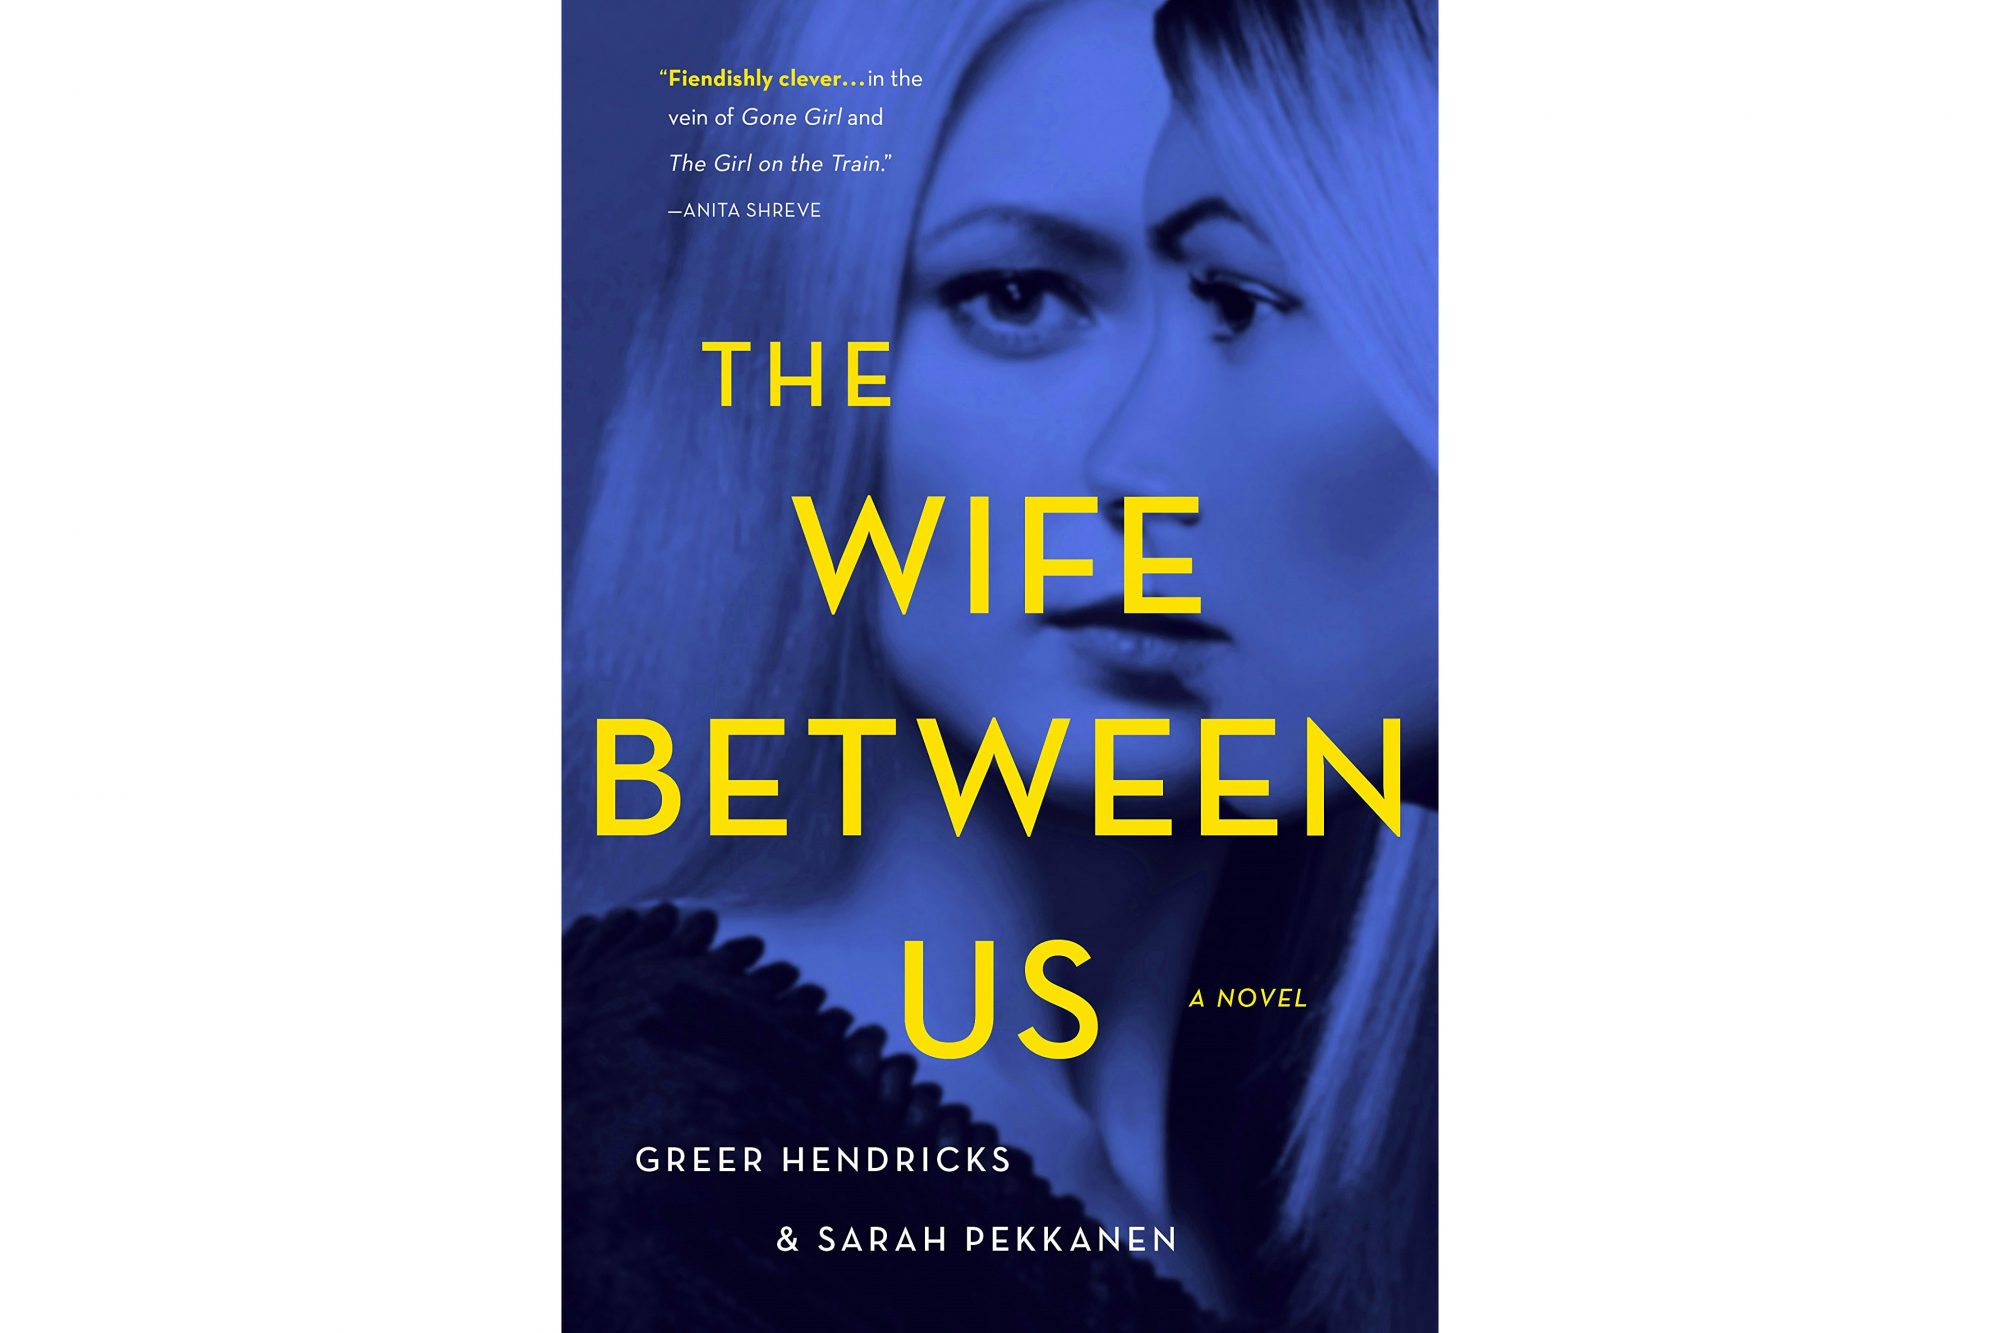 The Wife Between Us, by Greer Hendricks and Sarah Pekkanen